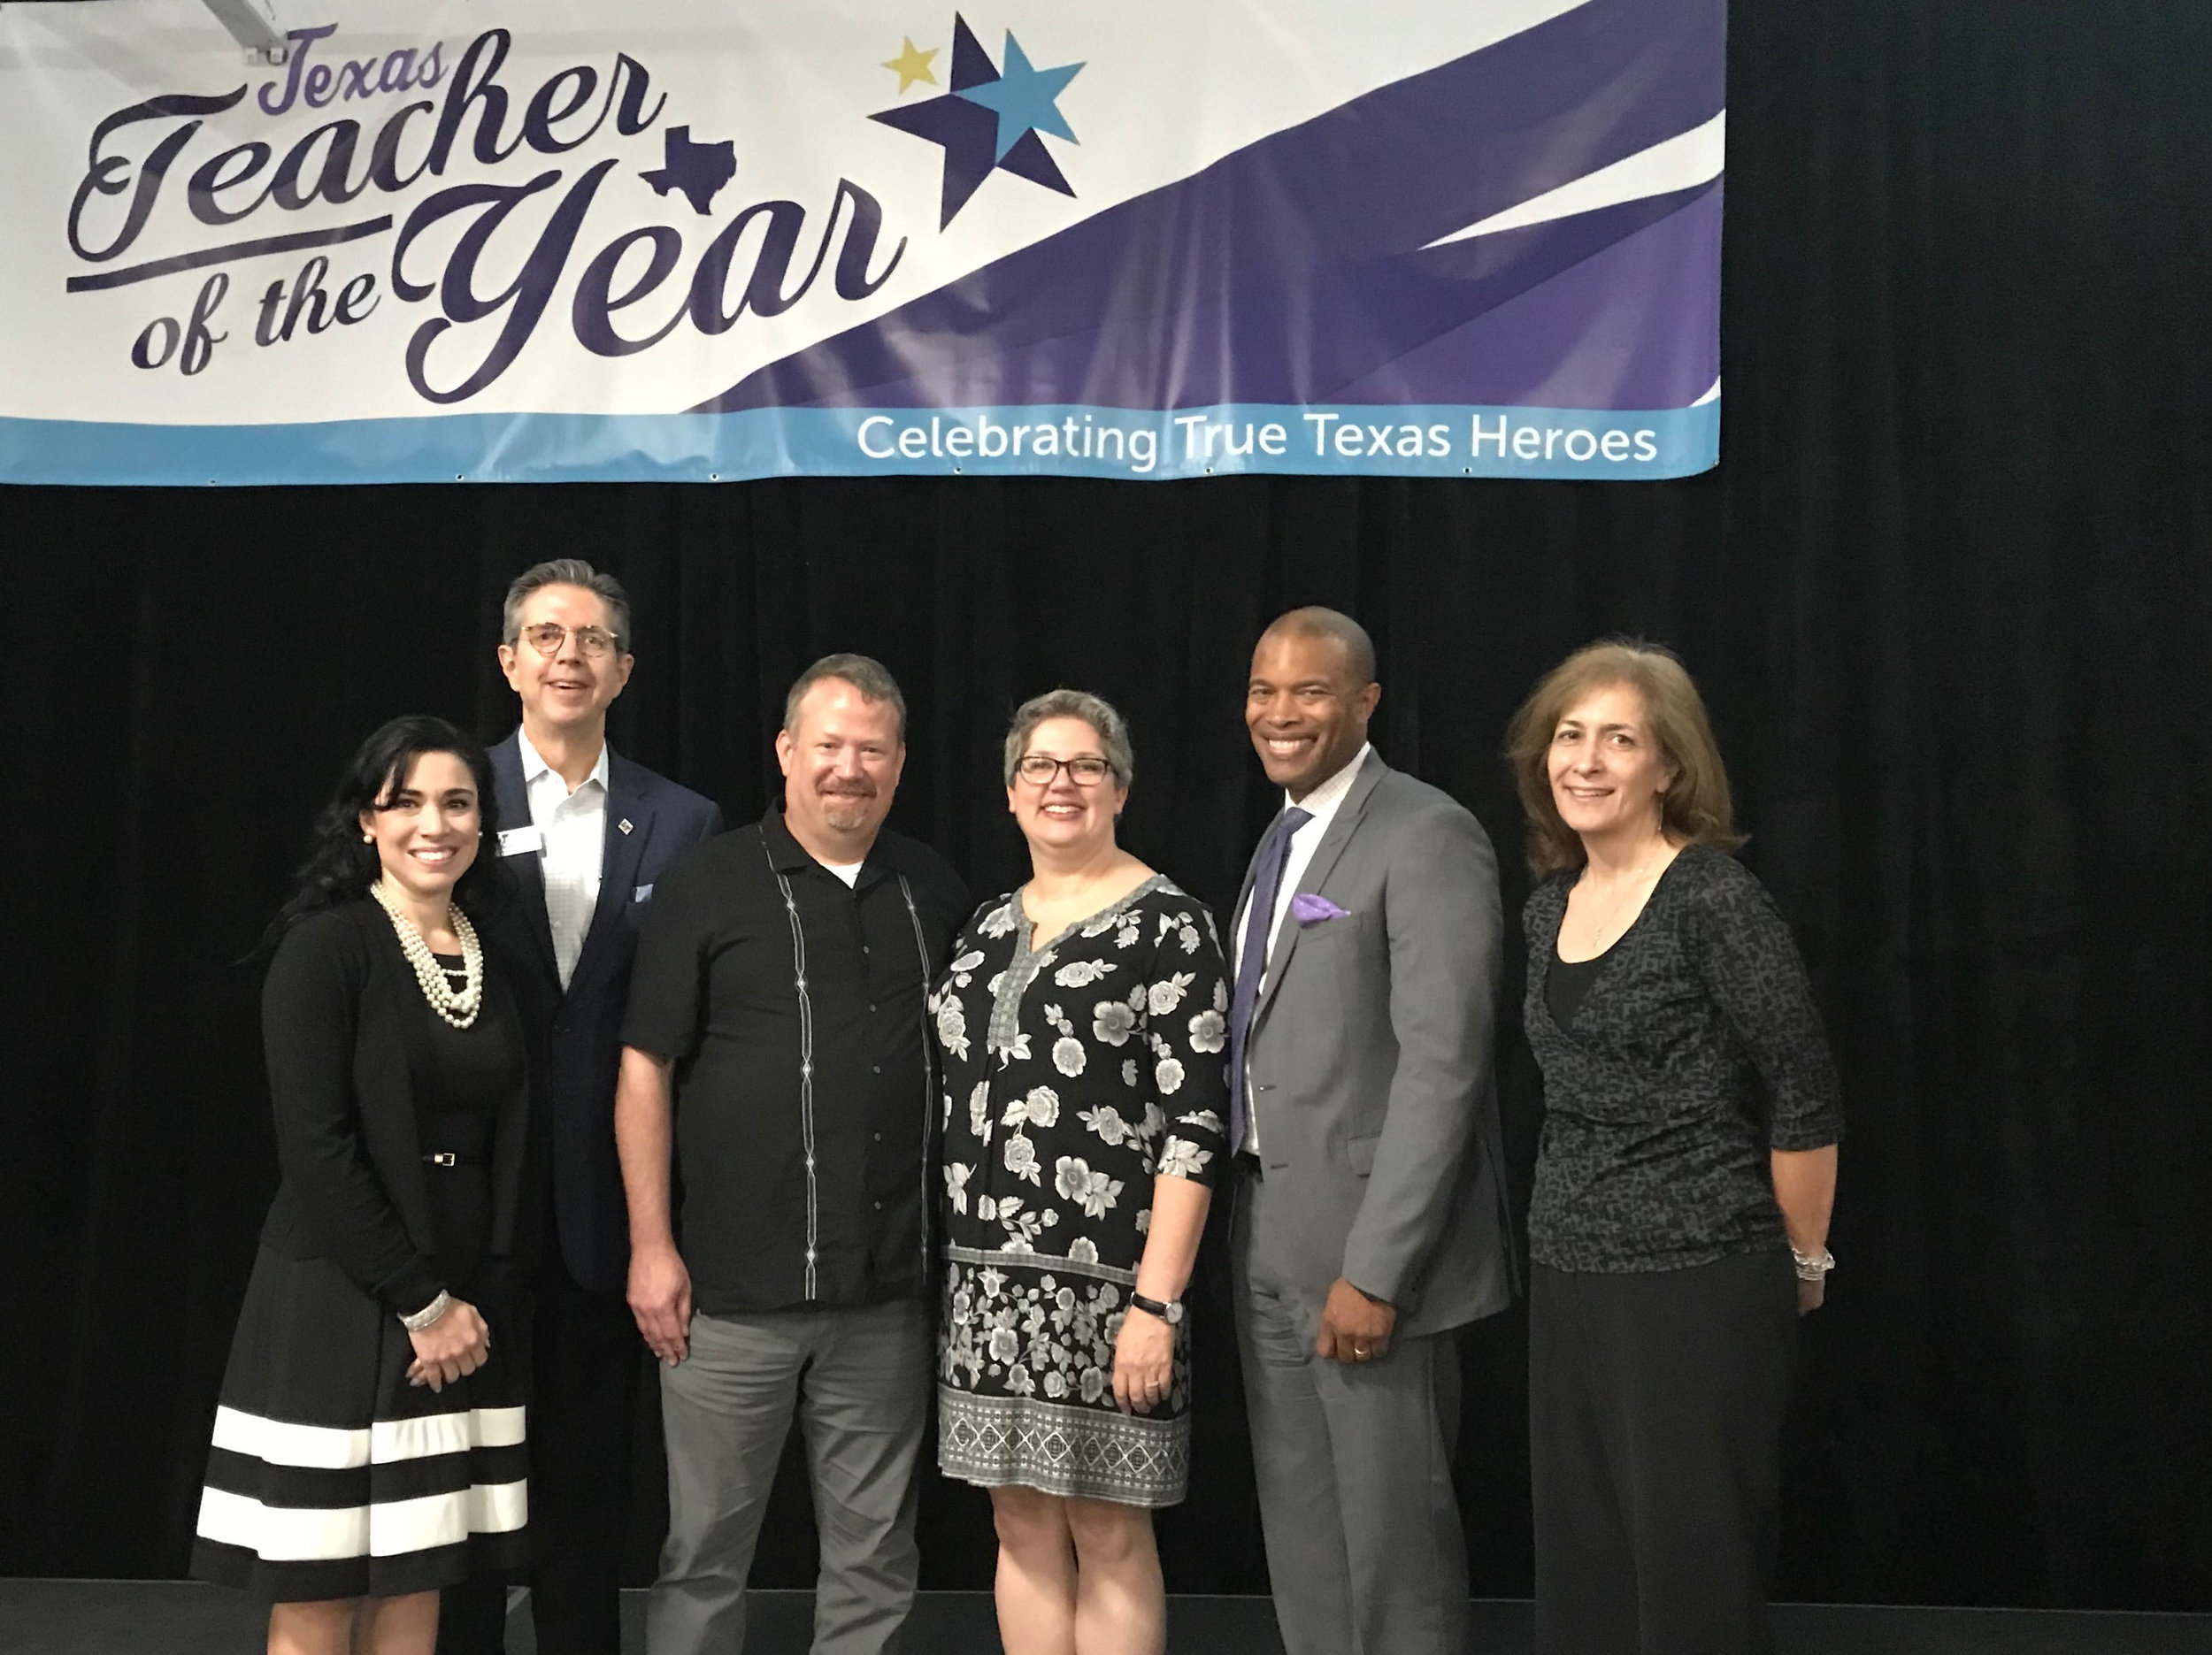 Pictured (l to r) at the 2019 Texas Teacher of the Year luncheon at the Bob Bullock Museum:  Holly Morris-Kuentz , Deputy Superintendent;  Dr. Brad Lancaster , Superintendent;  Craig Holden , social studies teacher at Hudson Bend Middle School and husband to Megan Holden;  Megan Holden , English and Art History teacher at Lake Travis High School;  Gordon Butler , principal at Lake Travis High School; and  Elizabeth Deterra , Assistant Superintendent for Learning and Teaching.